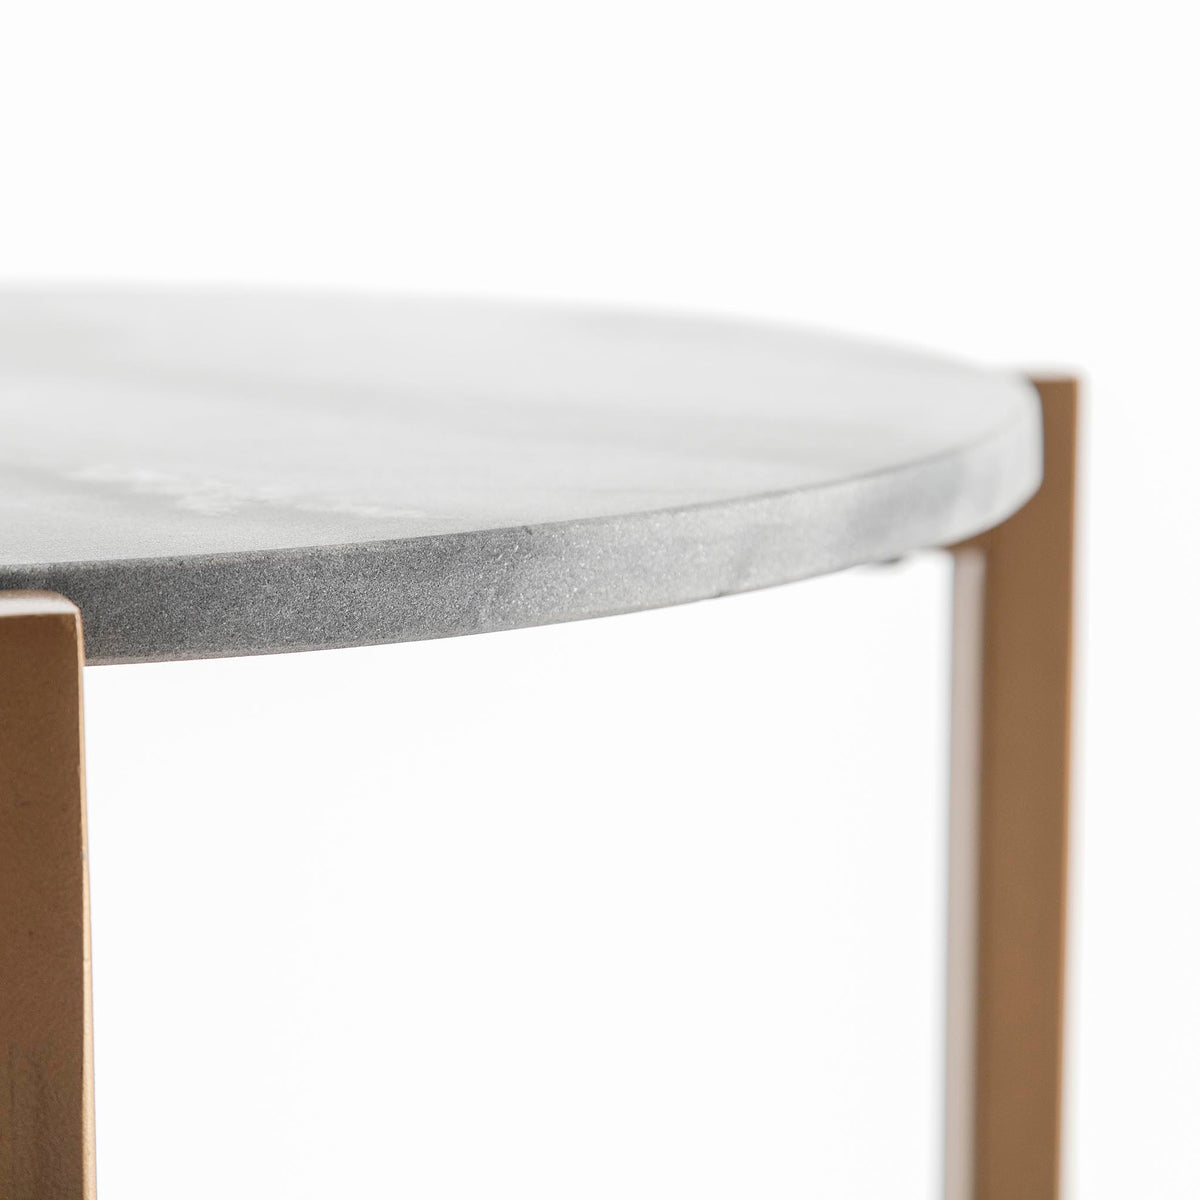 Kandla Grey Round Marble Side Table with Golden Base by Roseland Furniture - Close up of Marble edge